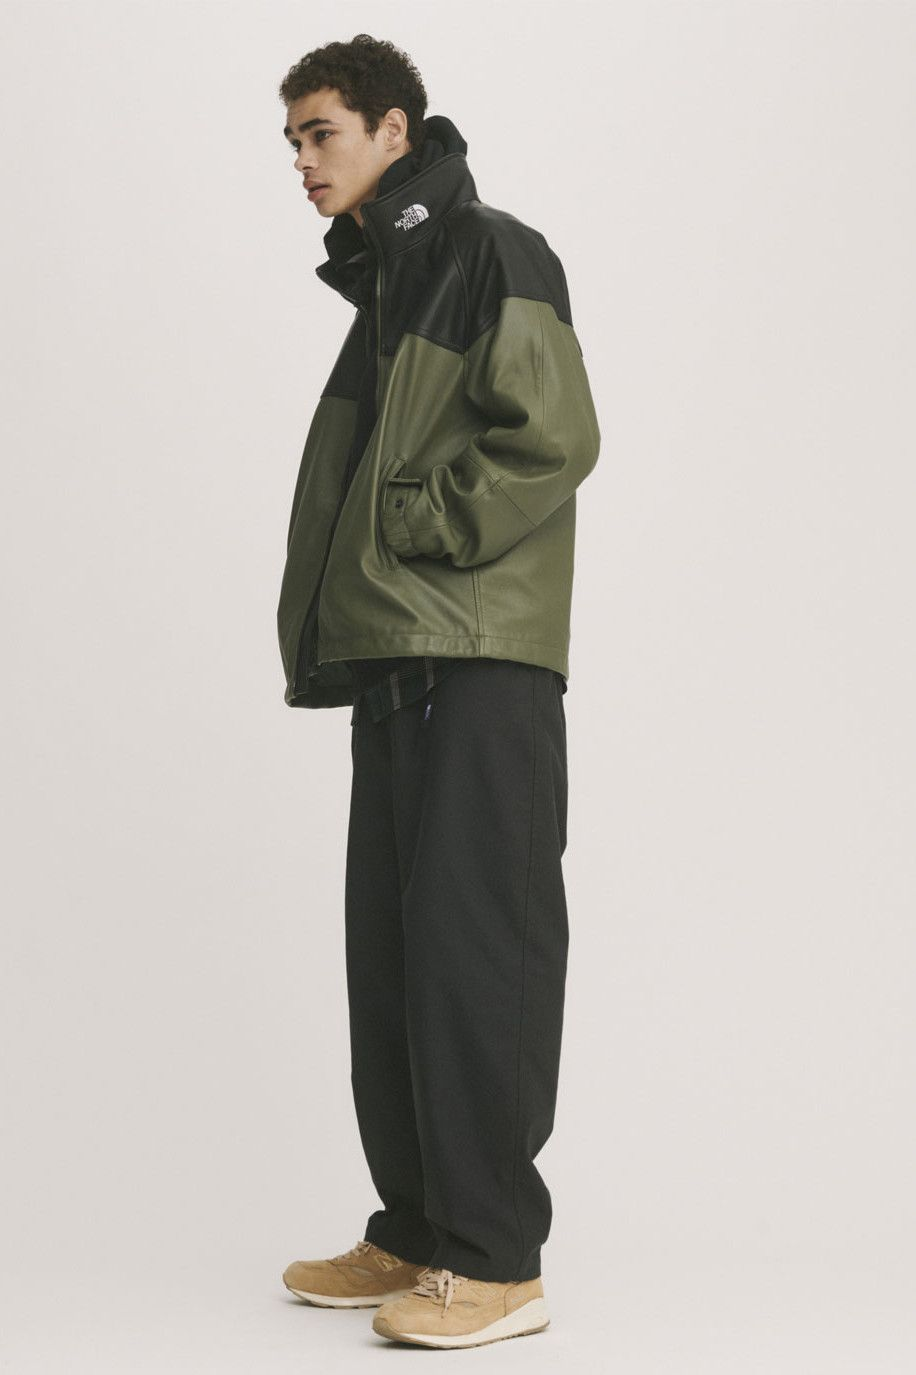 dd459e3a1 THE NORTH FACE PURPLE LABEL SS19 Lookbook Mixes Tech With Everyday ...